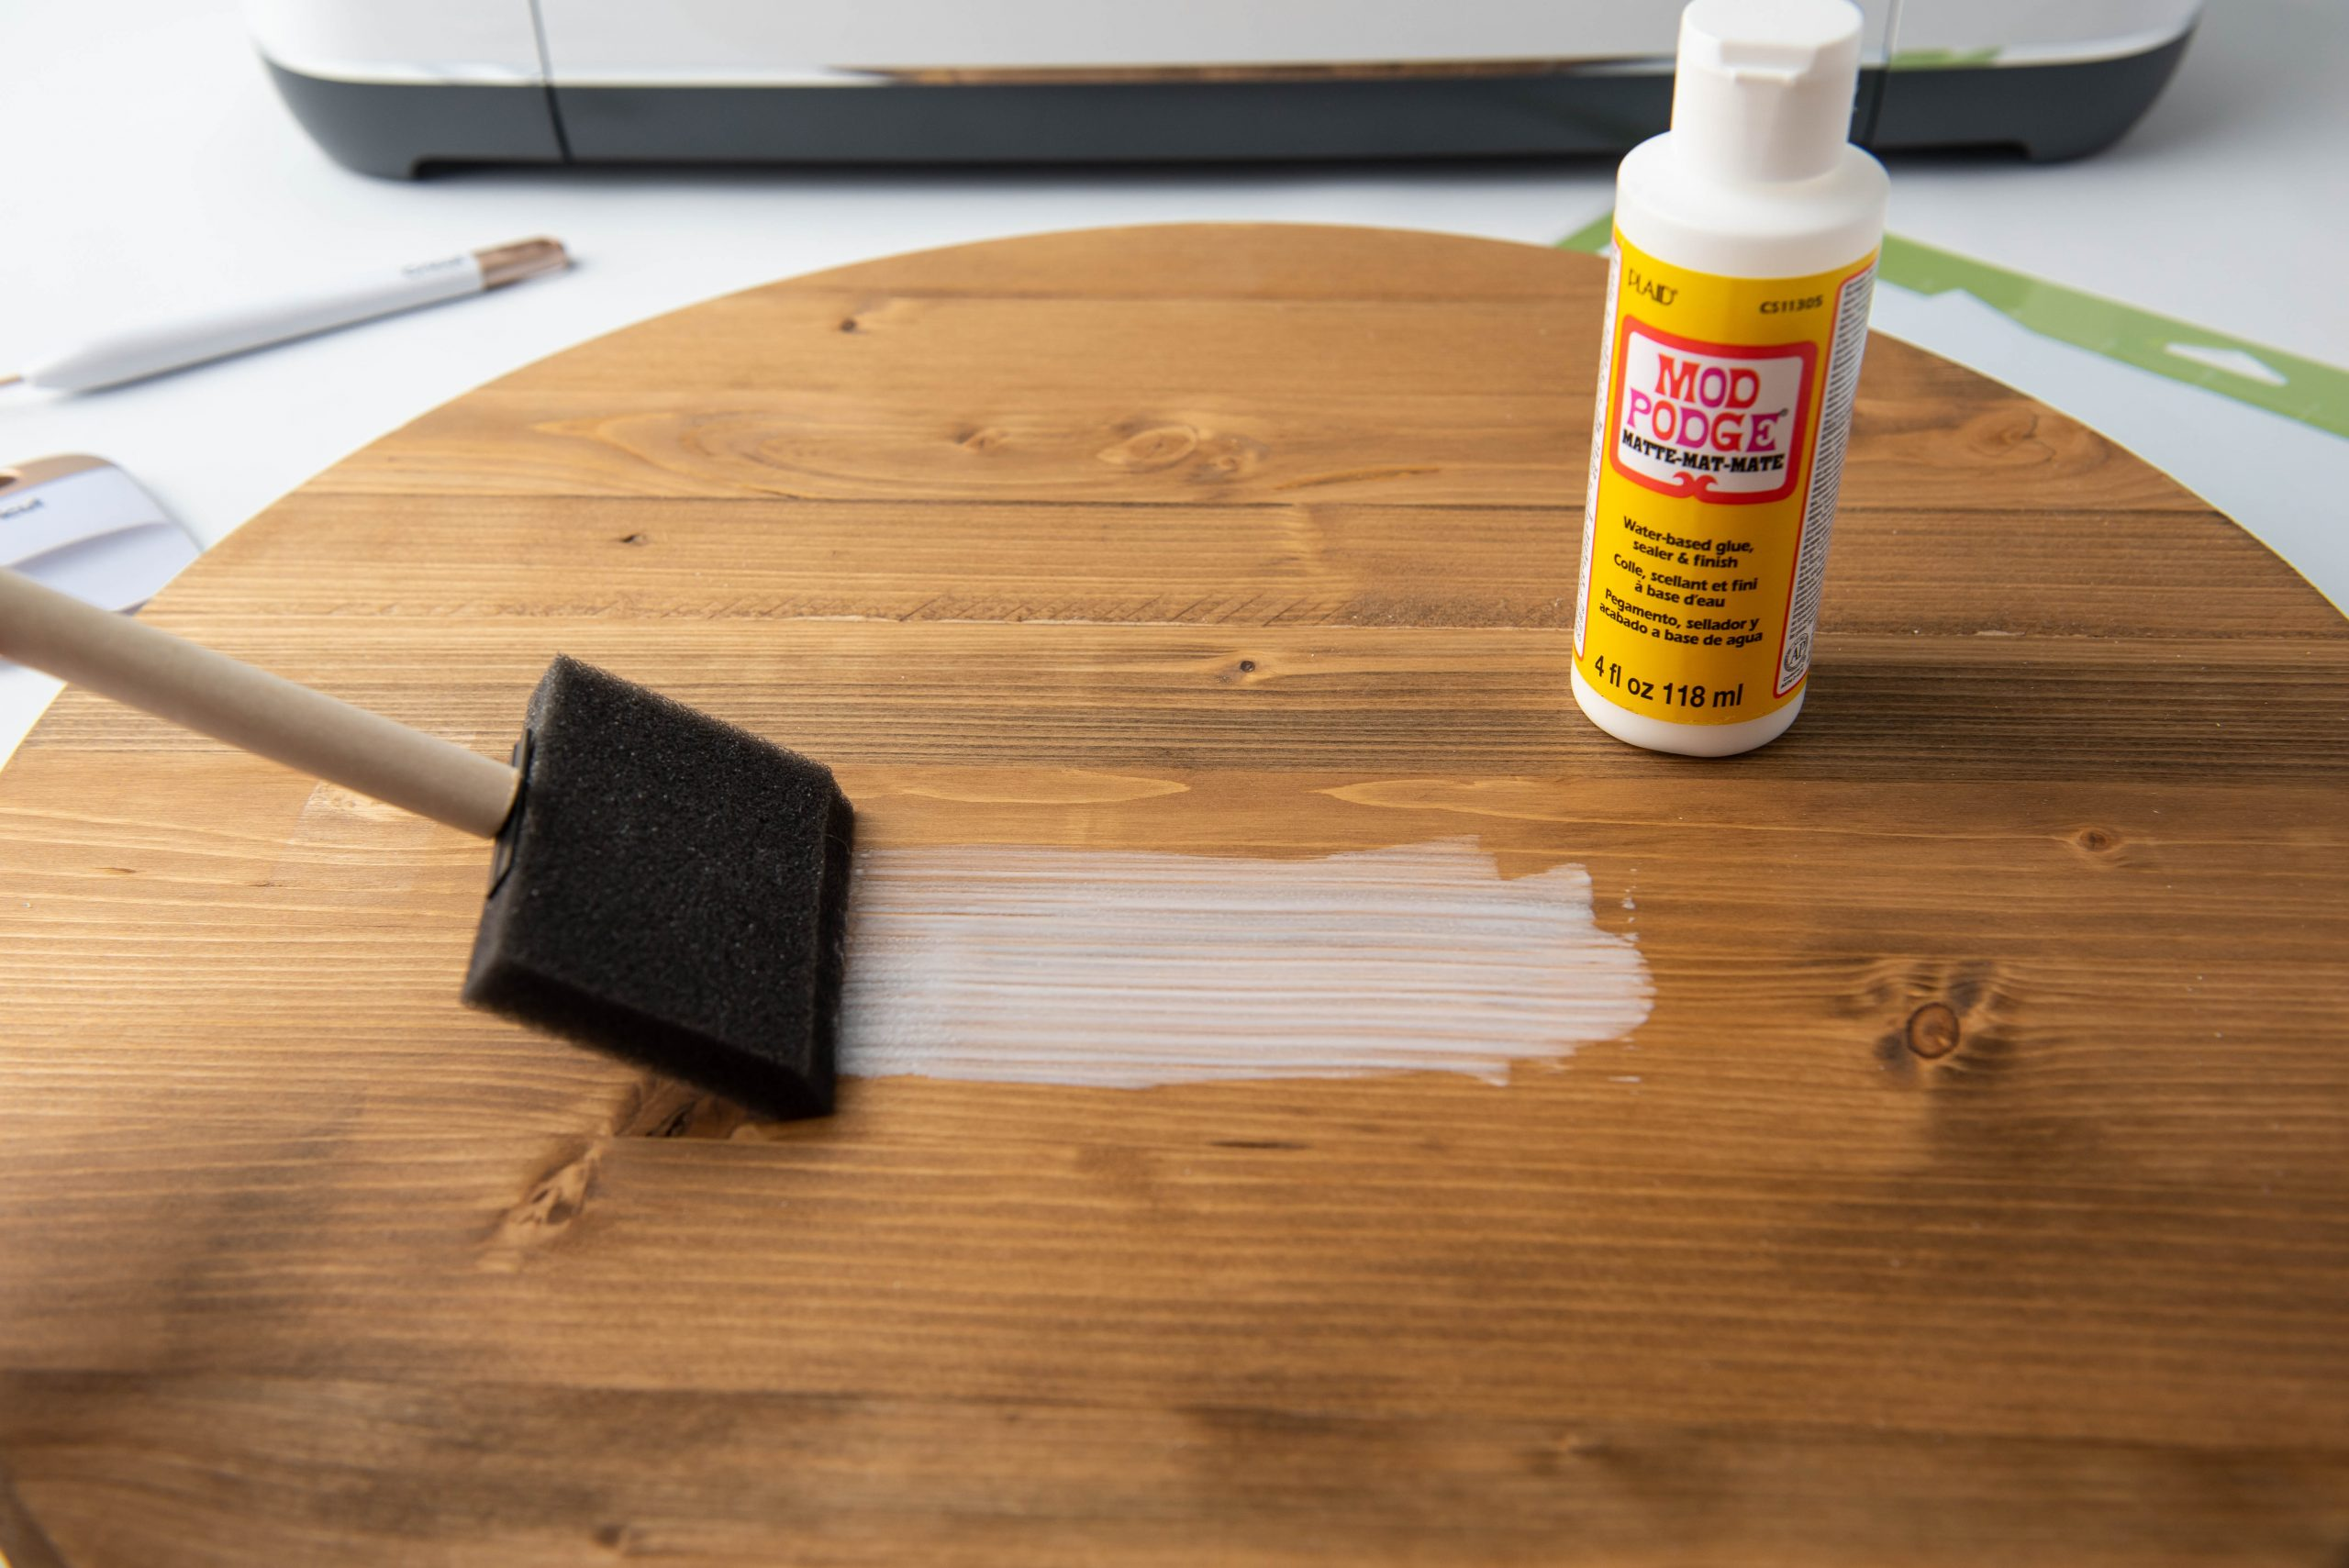 applying mod podge to round piece of wood